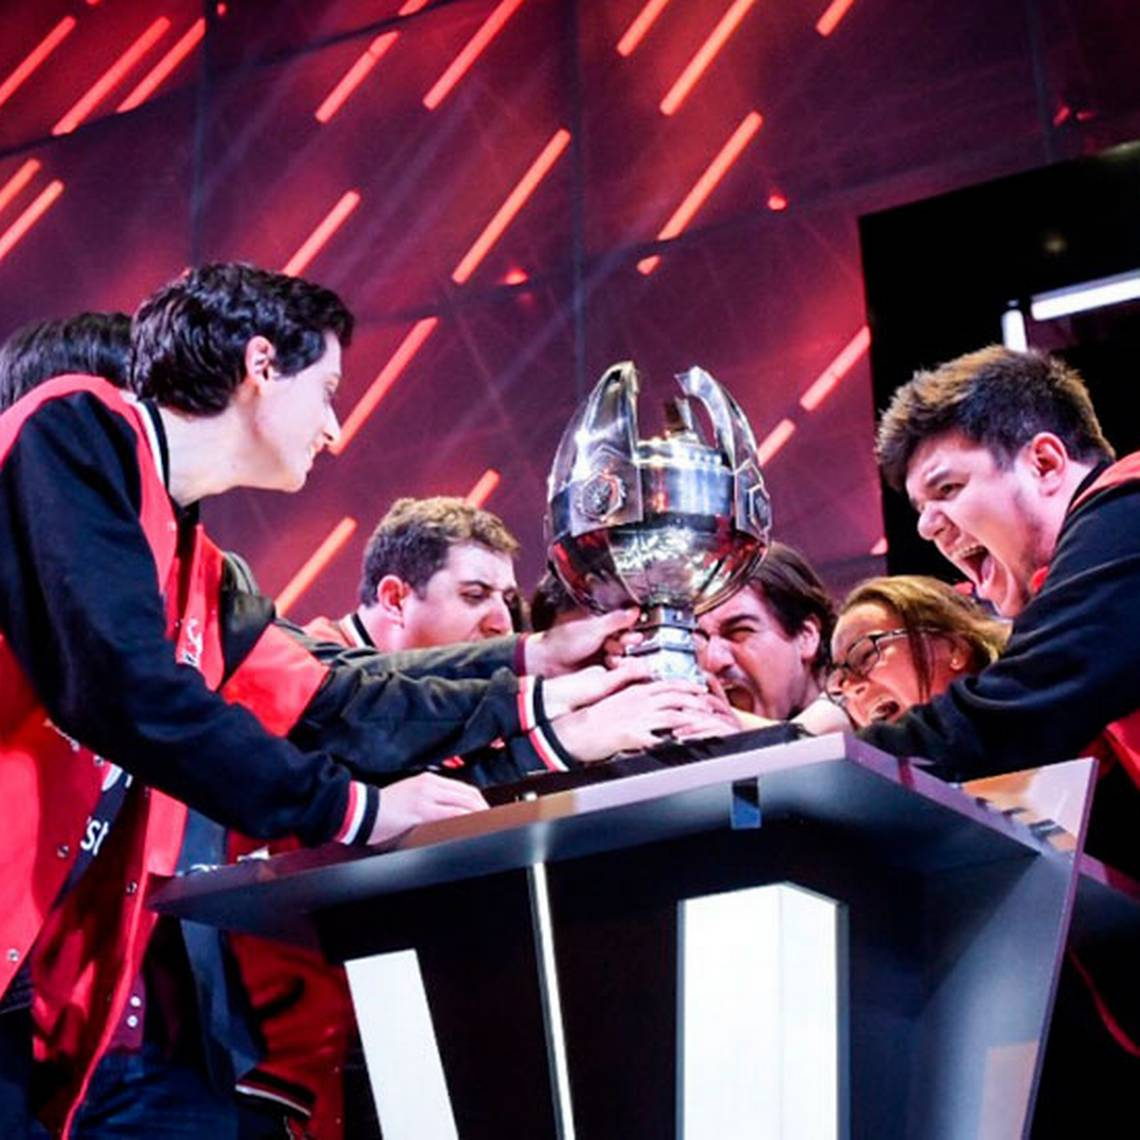 Los chilenos KLG ganan torneo latinoamericano de League of Legends